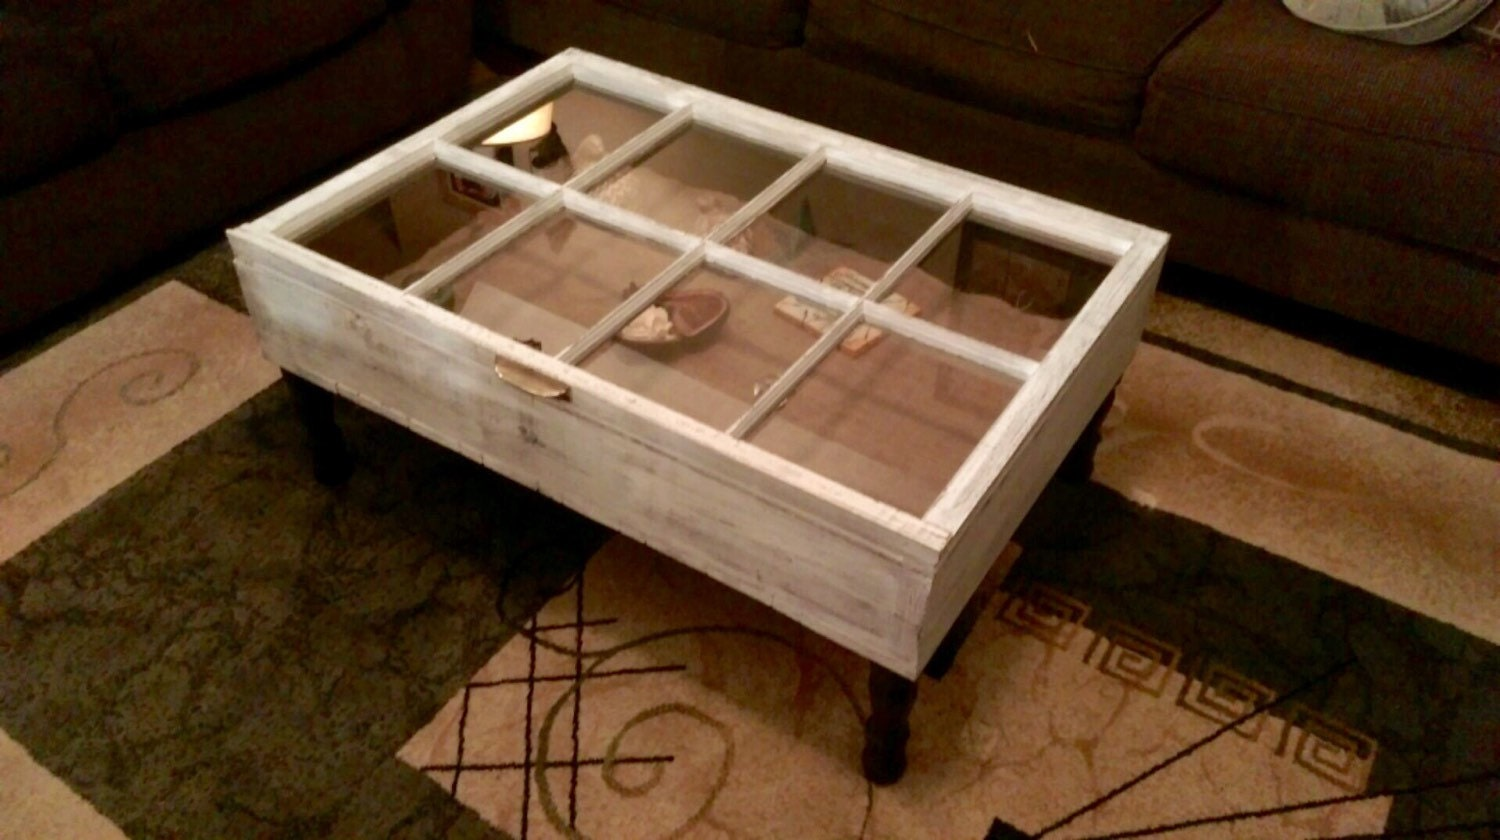 barn pottery home coffee mil melbourne glass box storage light frame toy ikea boxcar tables ideas full thippo decorating metal shadow uk crate industrial table plans drawer diy pk top wooden litter tool